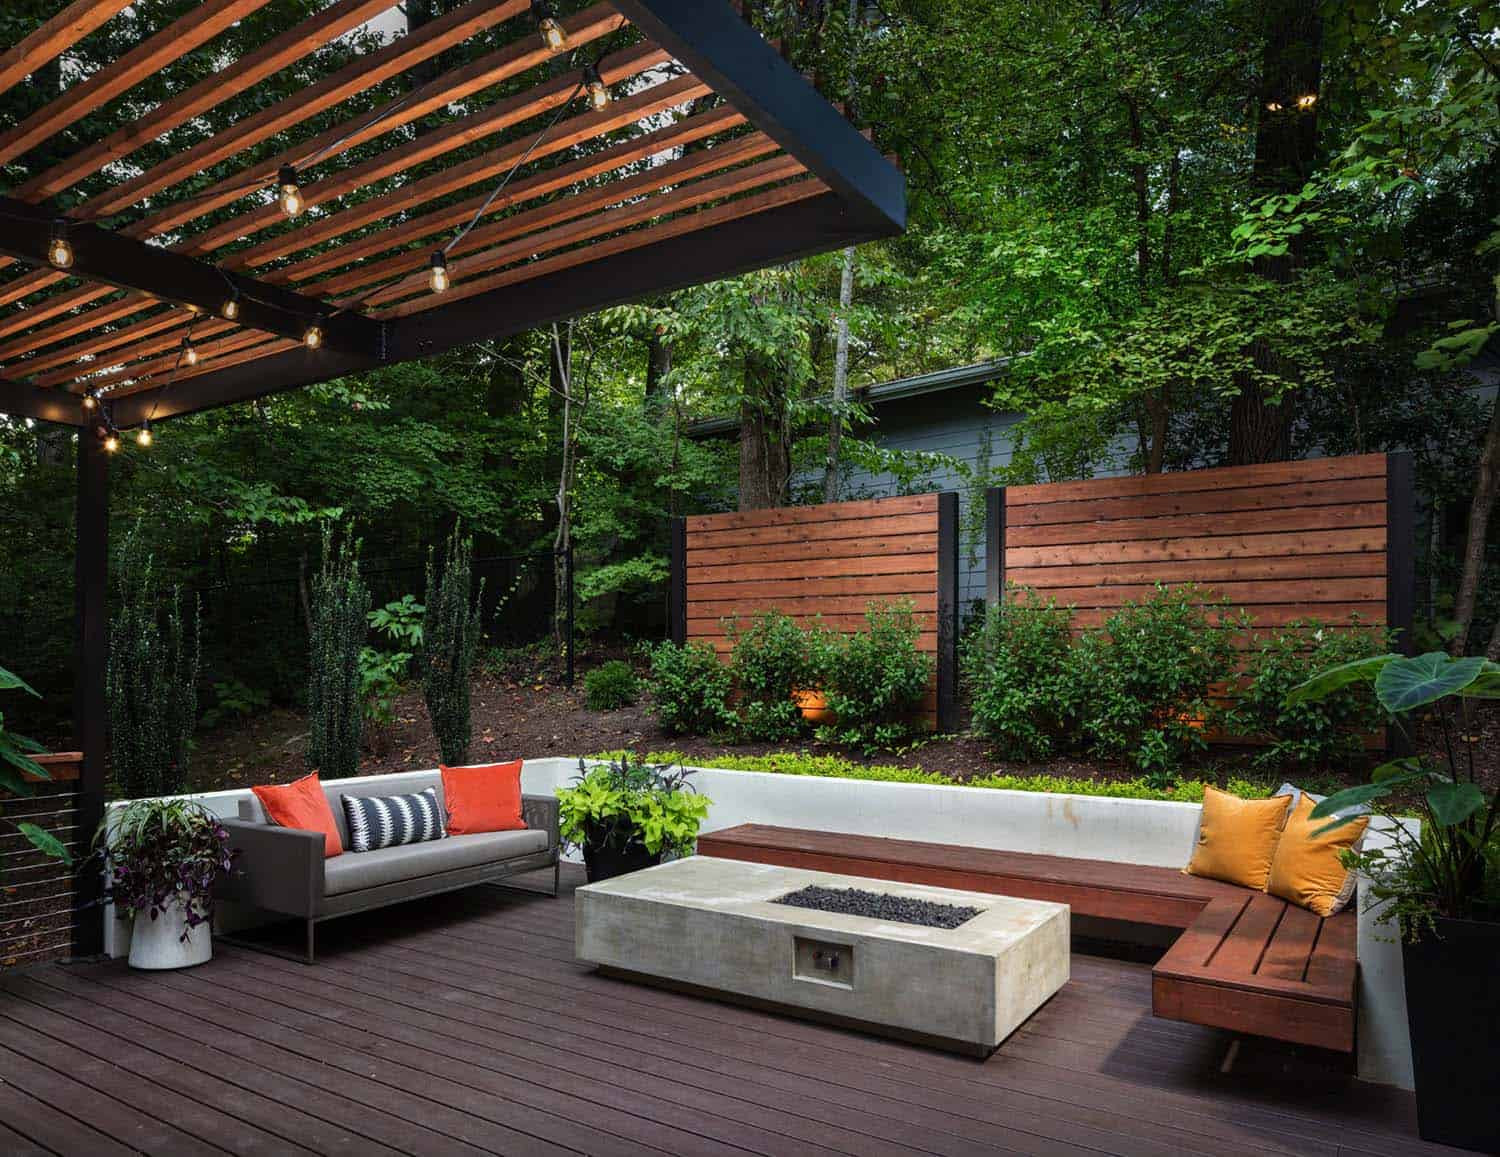 Patio With Fire Pit Ideas  28 Inspiring Fire Pit Ideas To Create A Fabulous Backyard